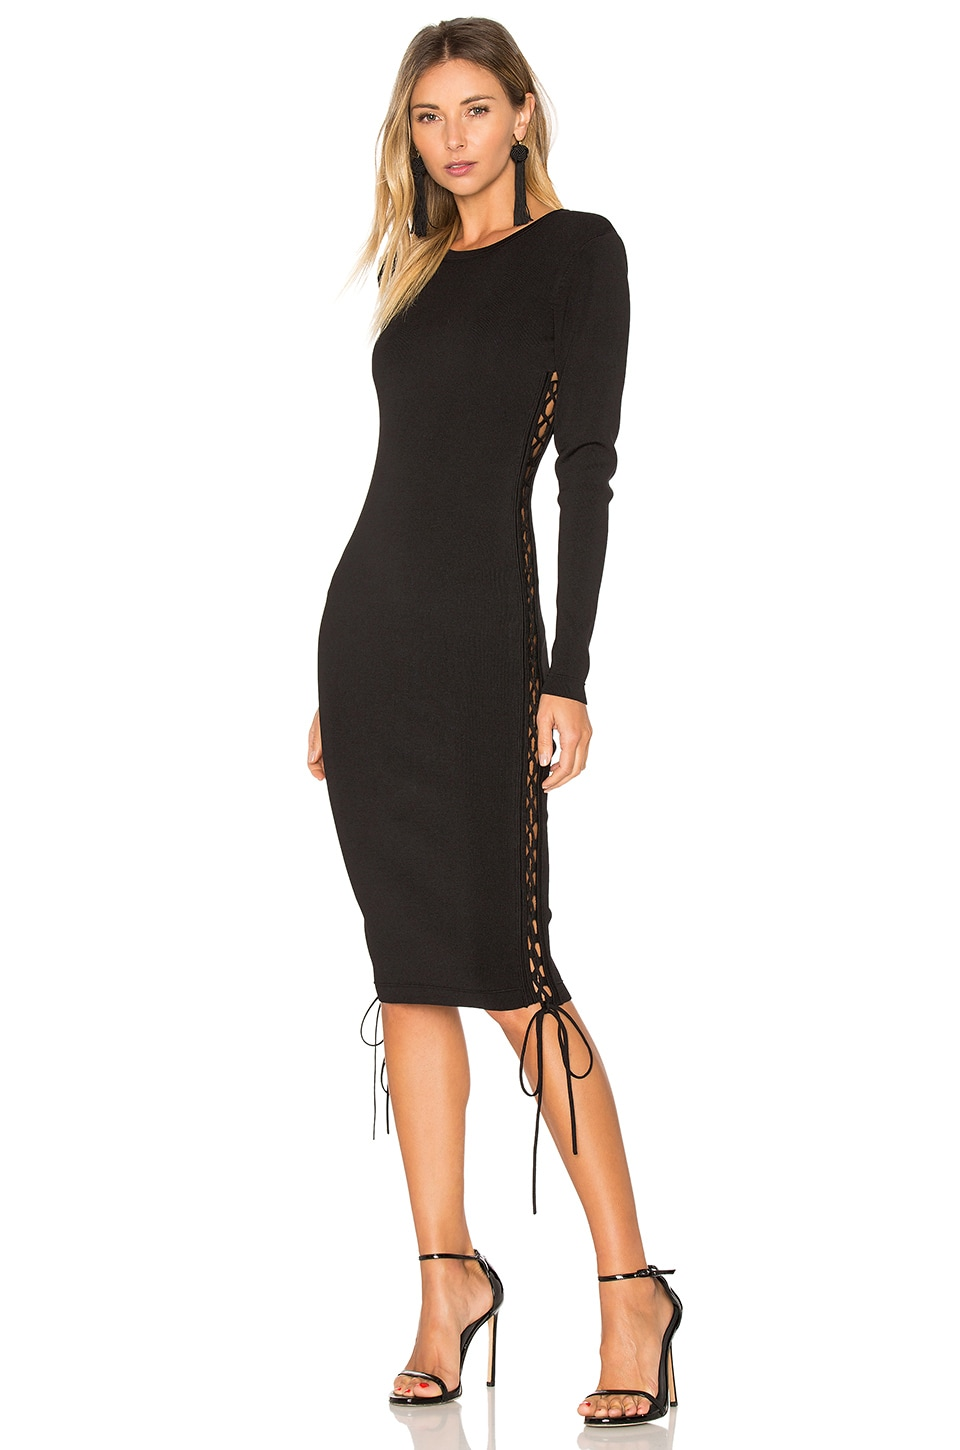 ale by alessandra x REVOLVE Tatiana Dress in Black Night